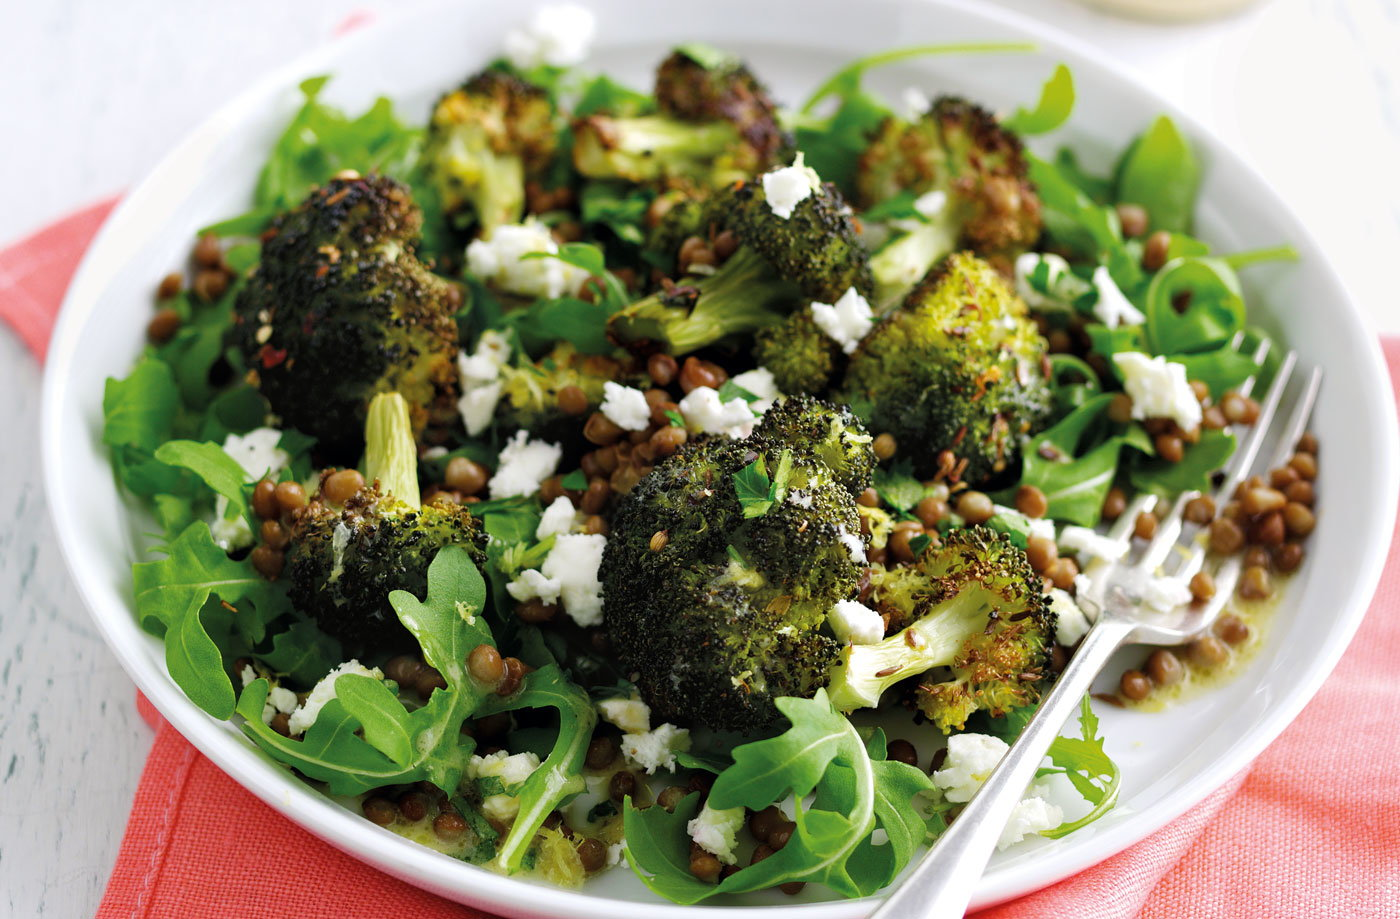 Roasted broccoli salad with feta and lentils recipe